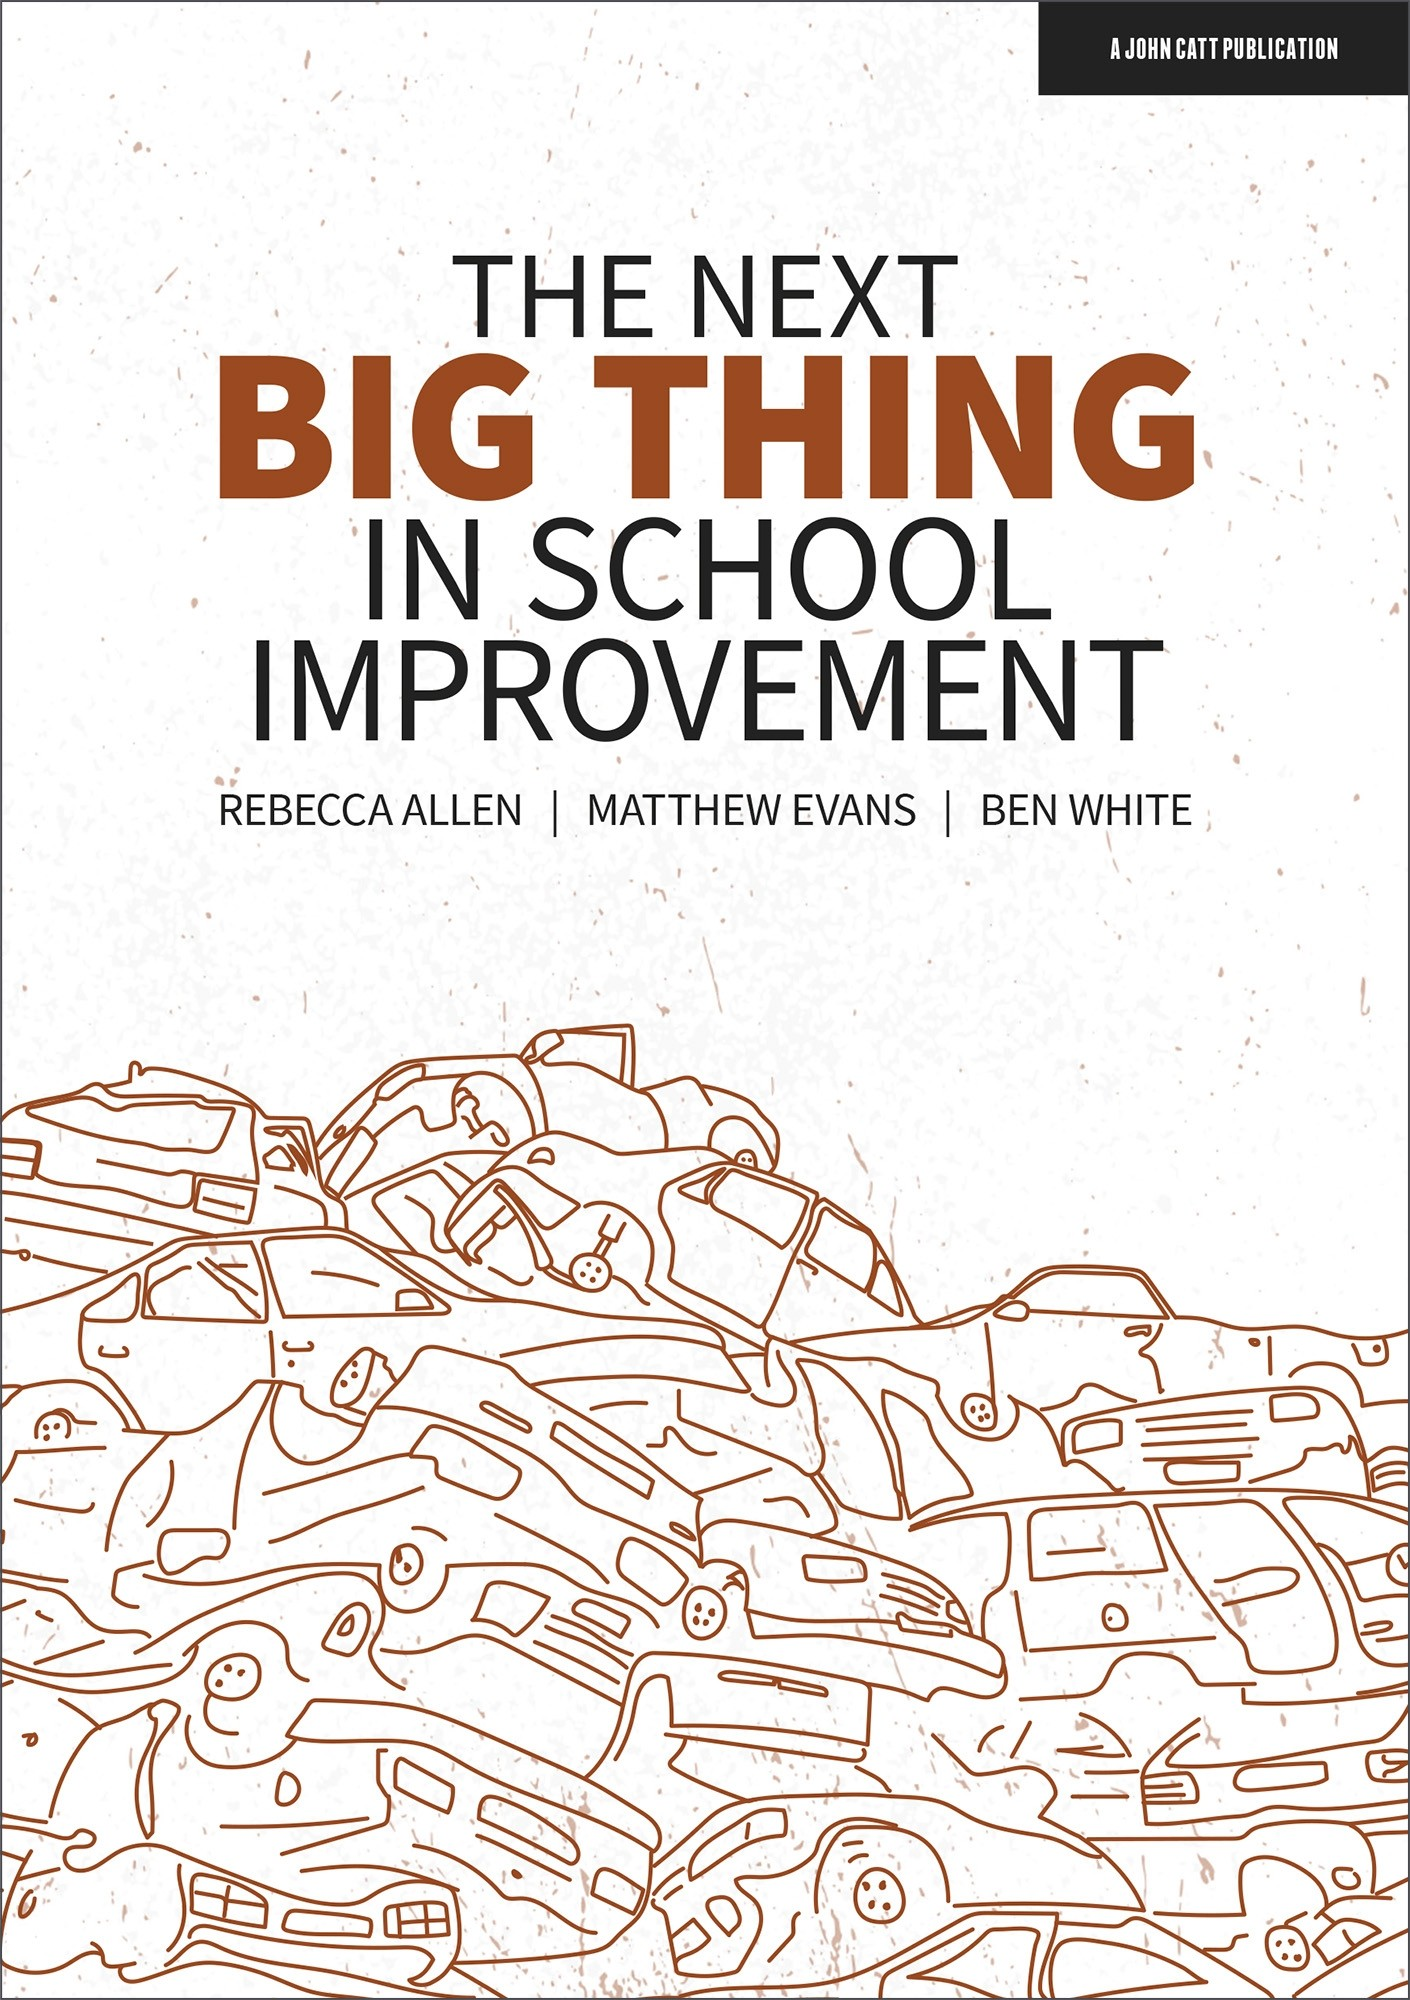 The Next Big Thing in School Improvement